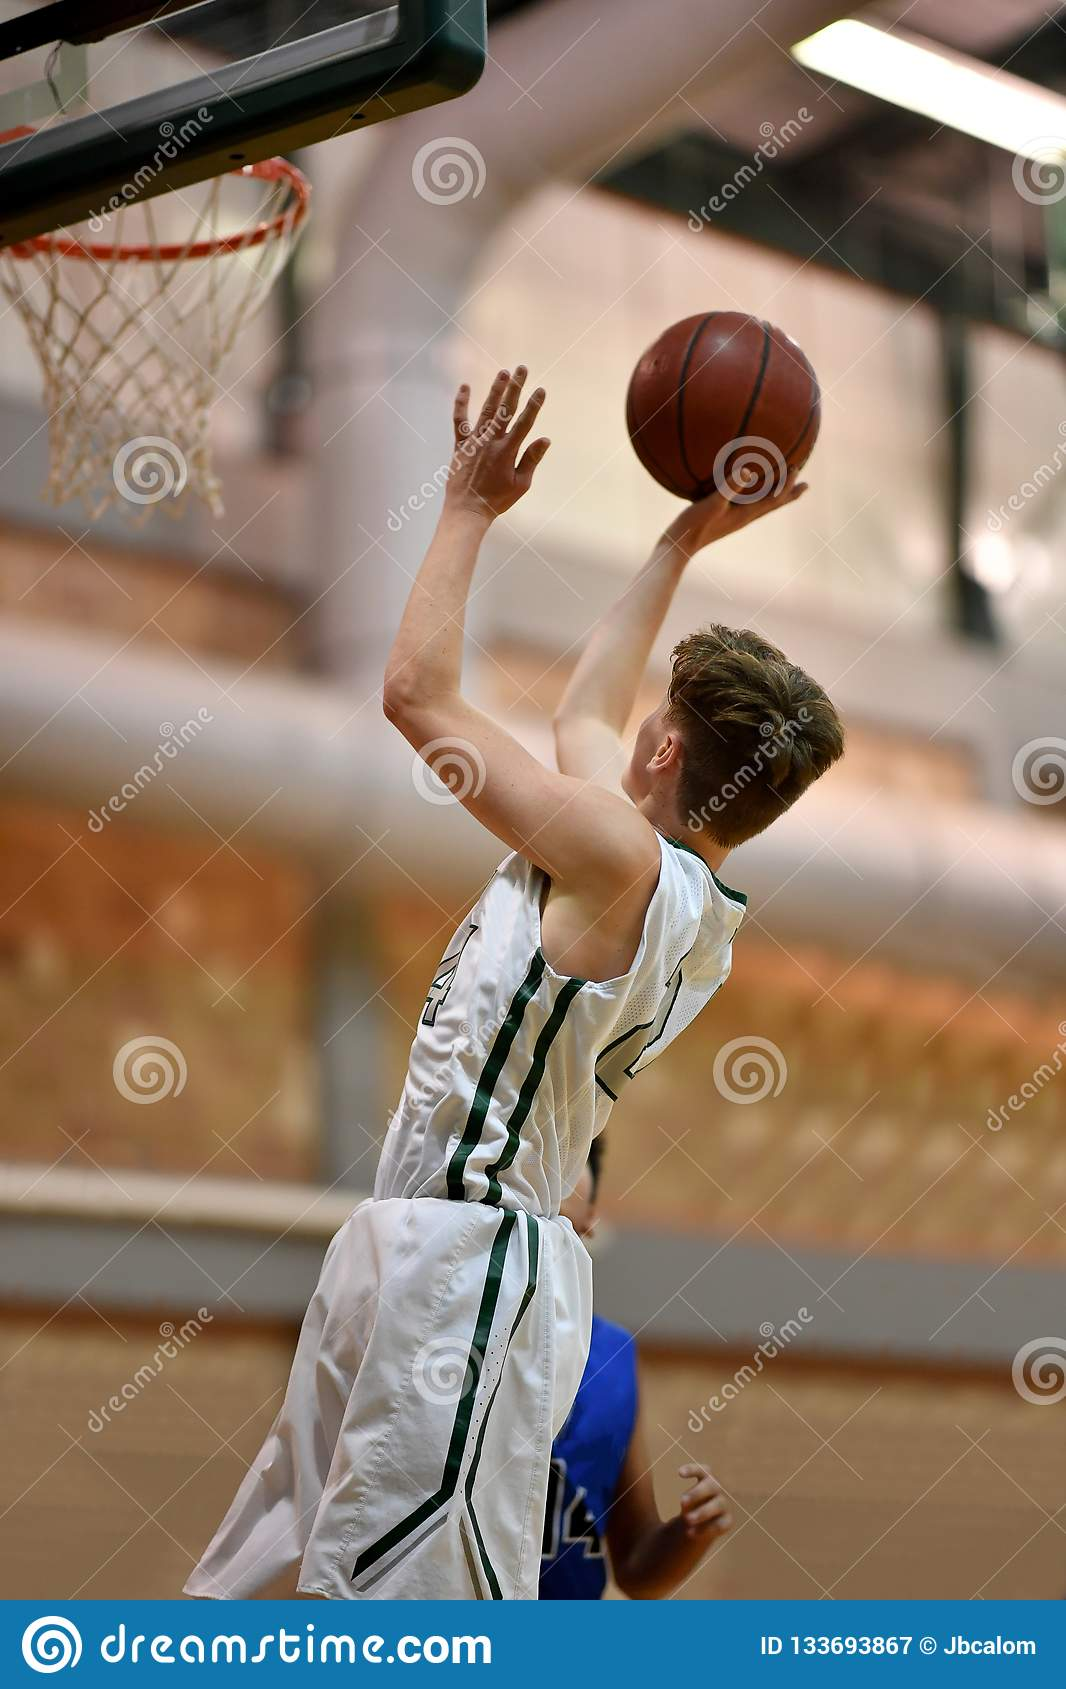 Great action shot of high school basketball player making an amazing play during a basketball game